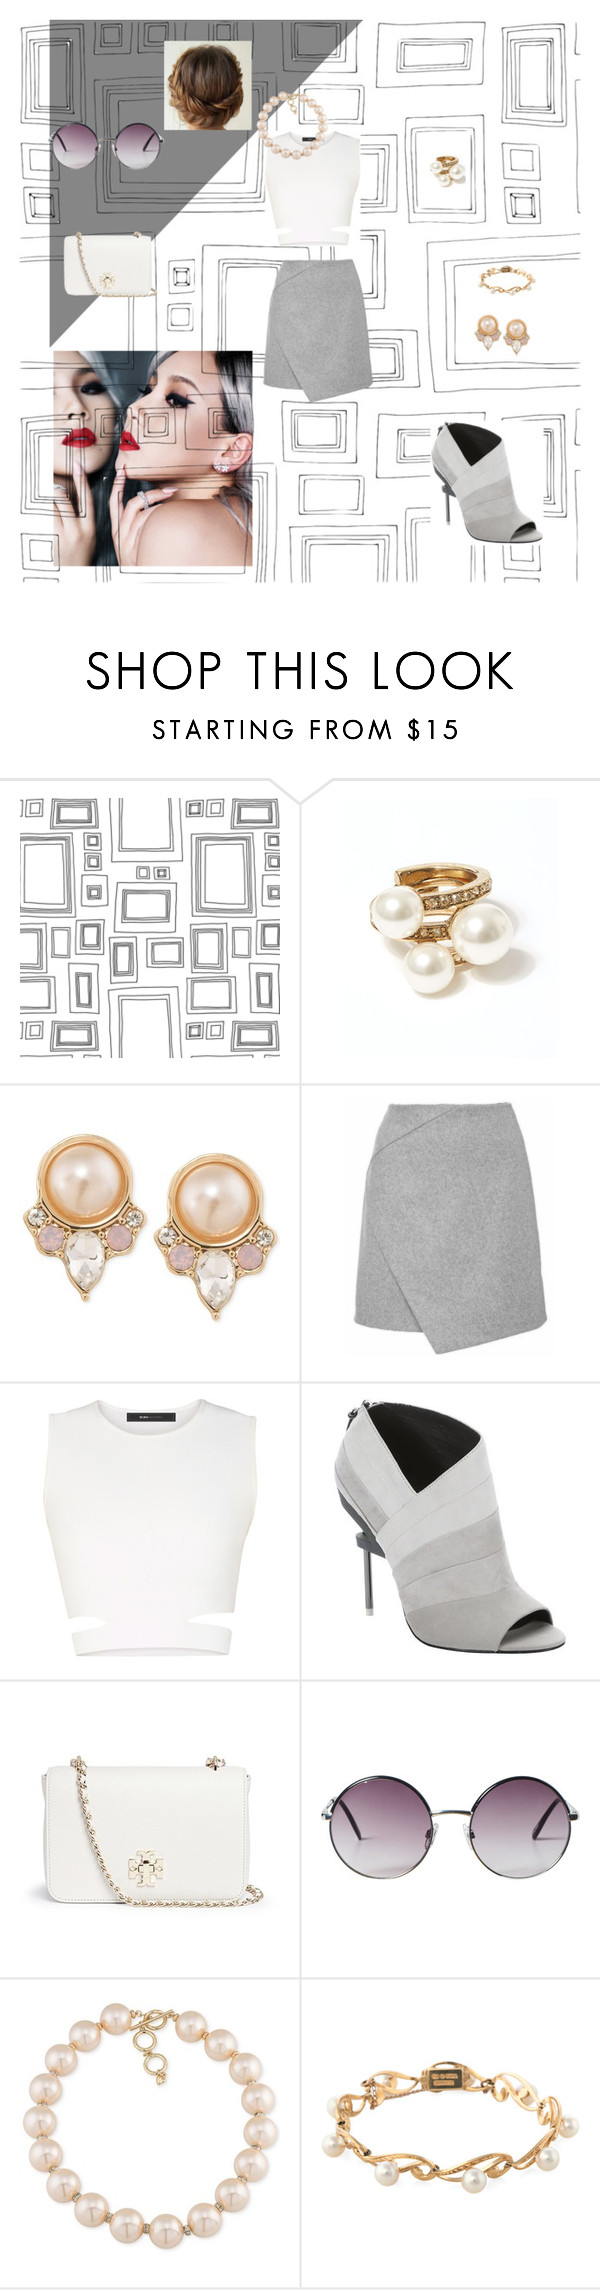 """""""Untitled #227"""" by janaboughanem ❤ liked on Polyvore featuring Graham & Brown, Oscar de la Renta, Carolee, BCBGMAXAZRIA, L.A.M.B., Tory Burch, Monki and Mikimoto"""